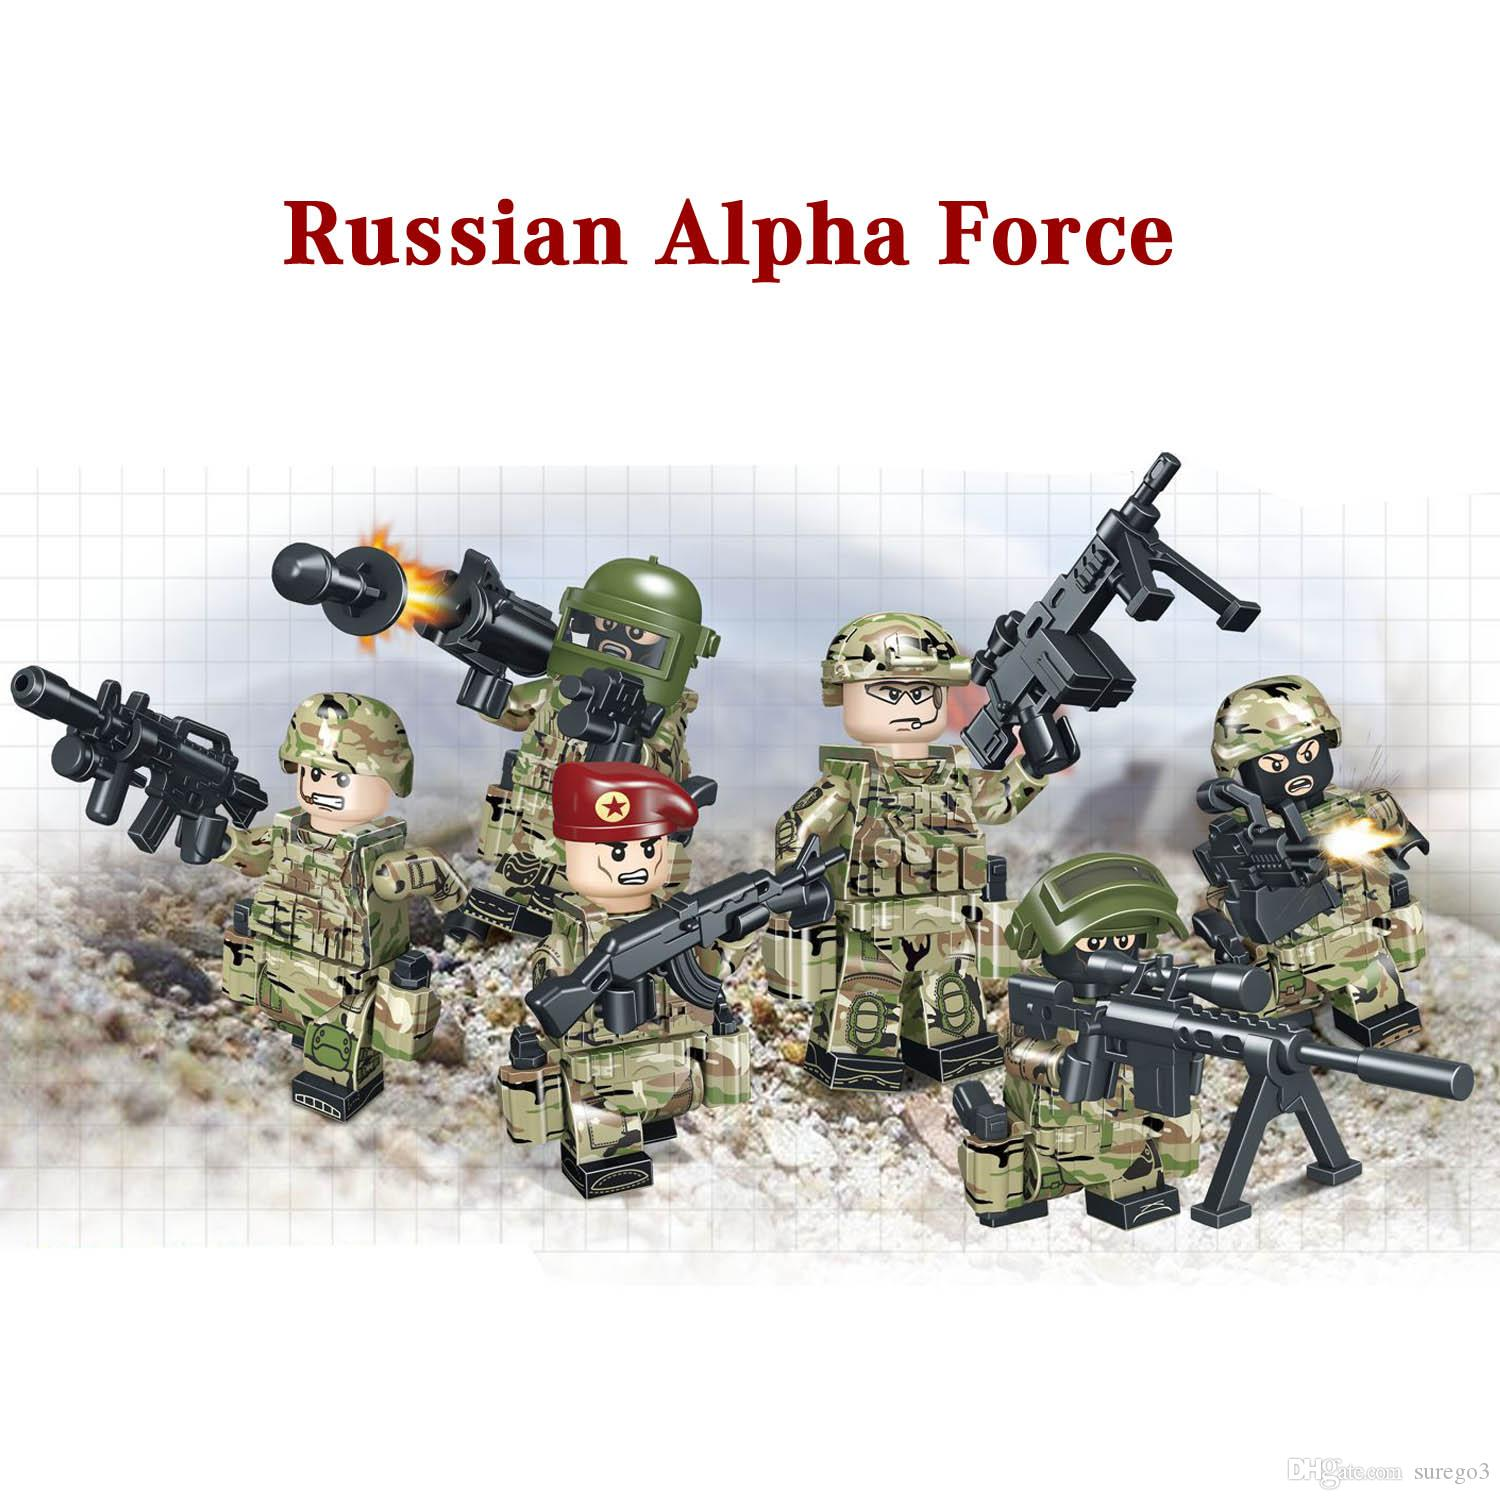 Educational Russian Alpha Force Army Building Block Toy Mini Military Soldier Figure Set Brick Toy for boy and kid